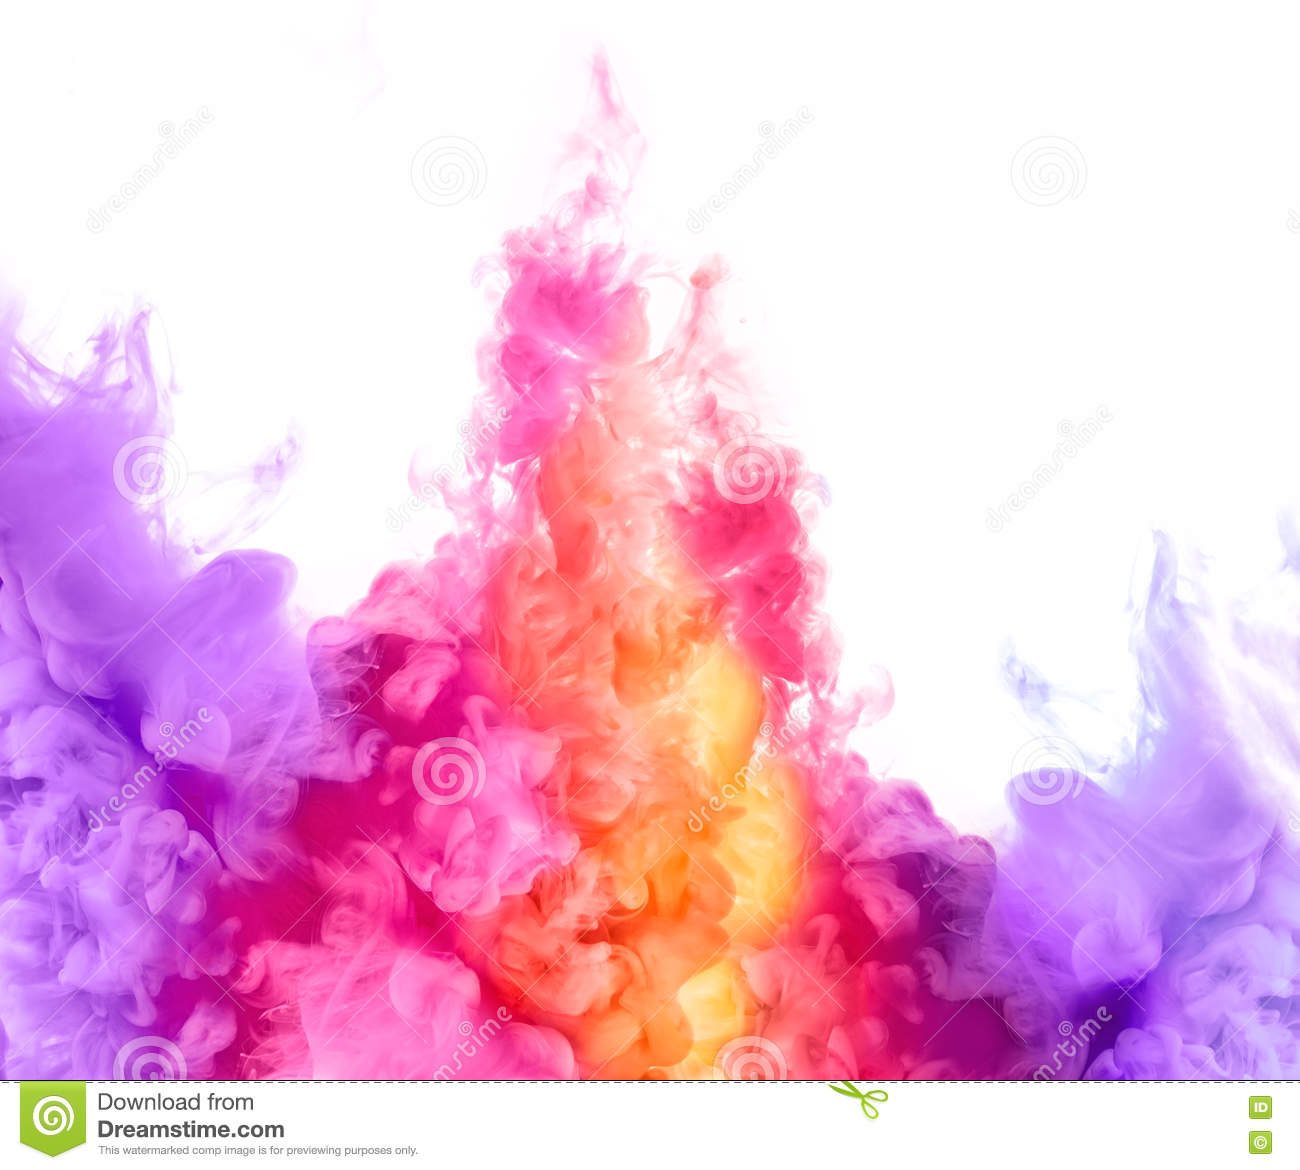 Paint Pigment Cloud Explosion Stock Photos.